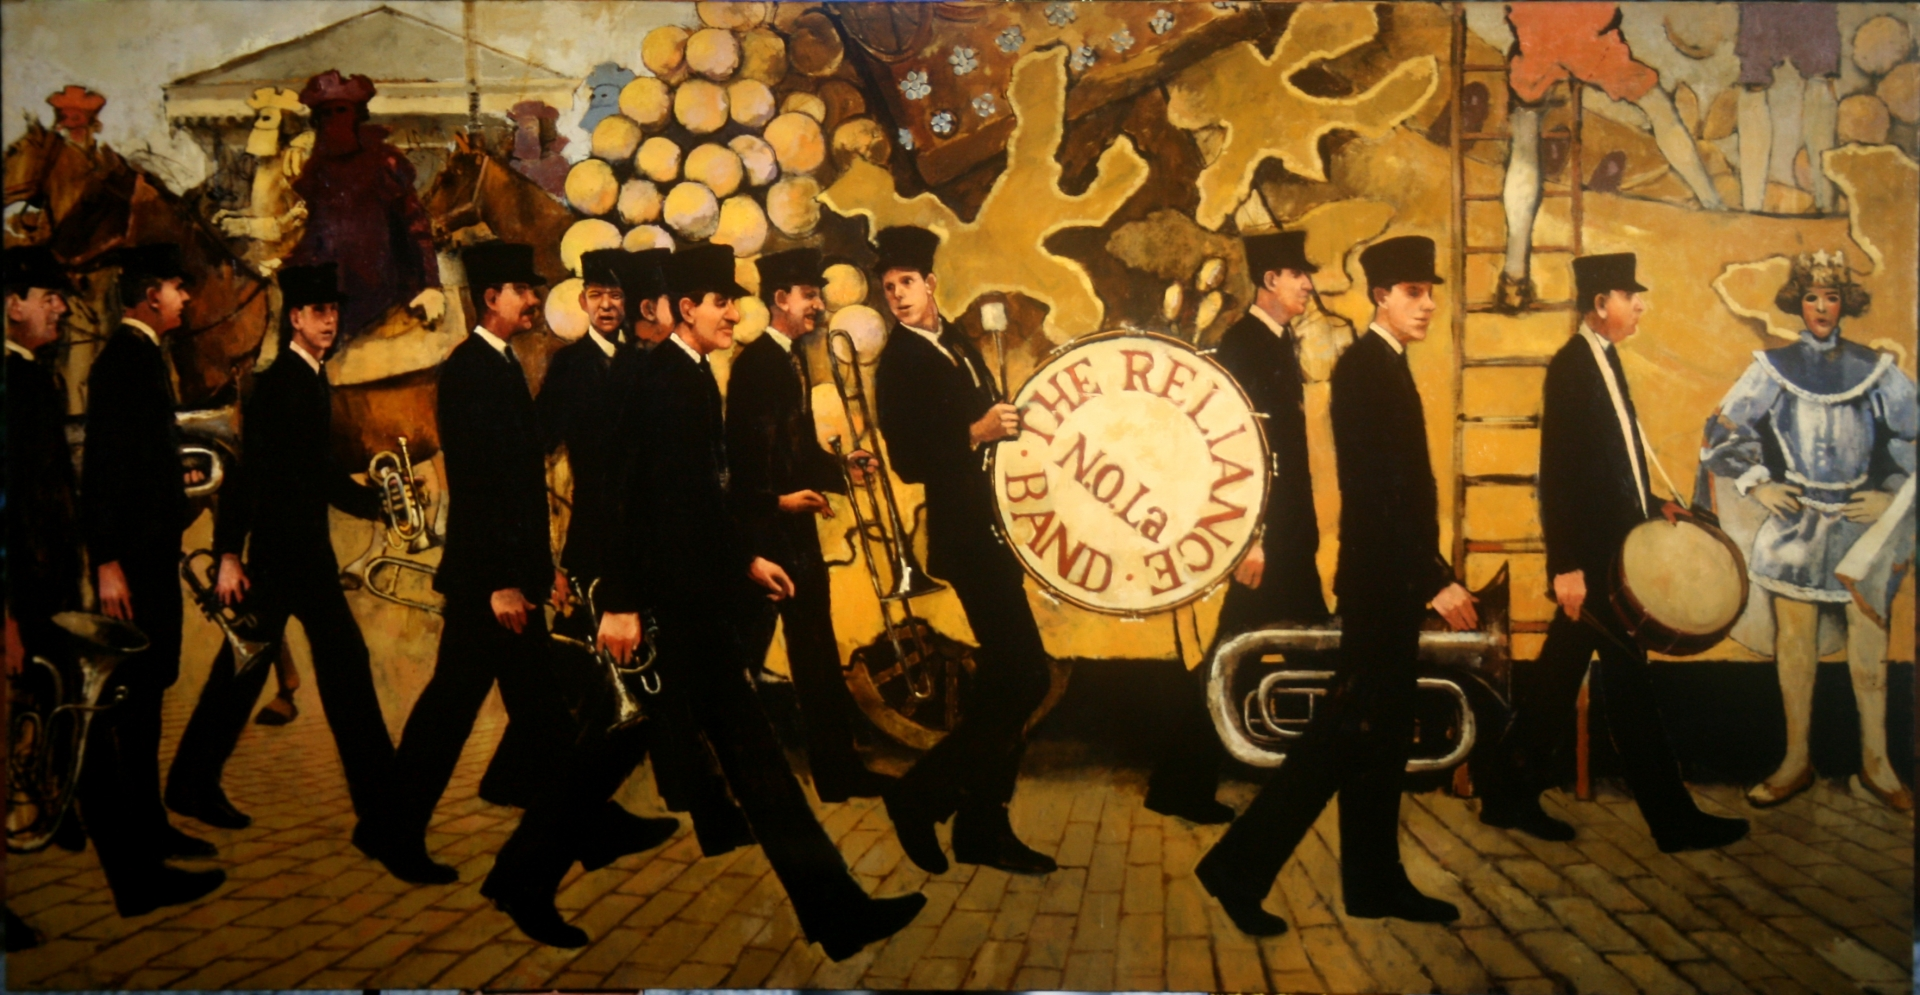 Jack Laine's Reliance Band Lining Up at the Rex Parade 1915 :: Oil on canvas